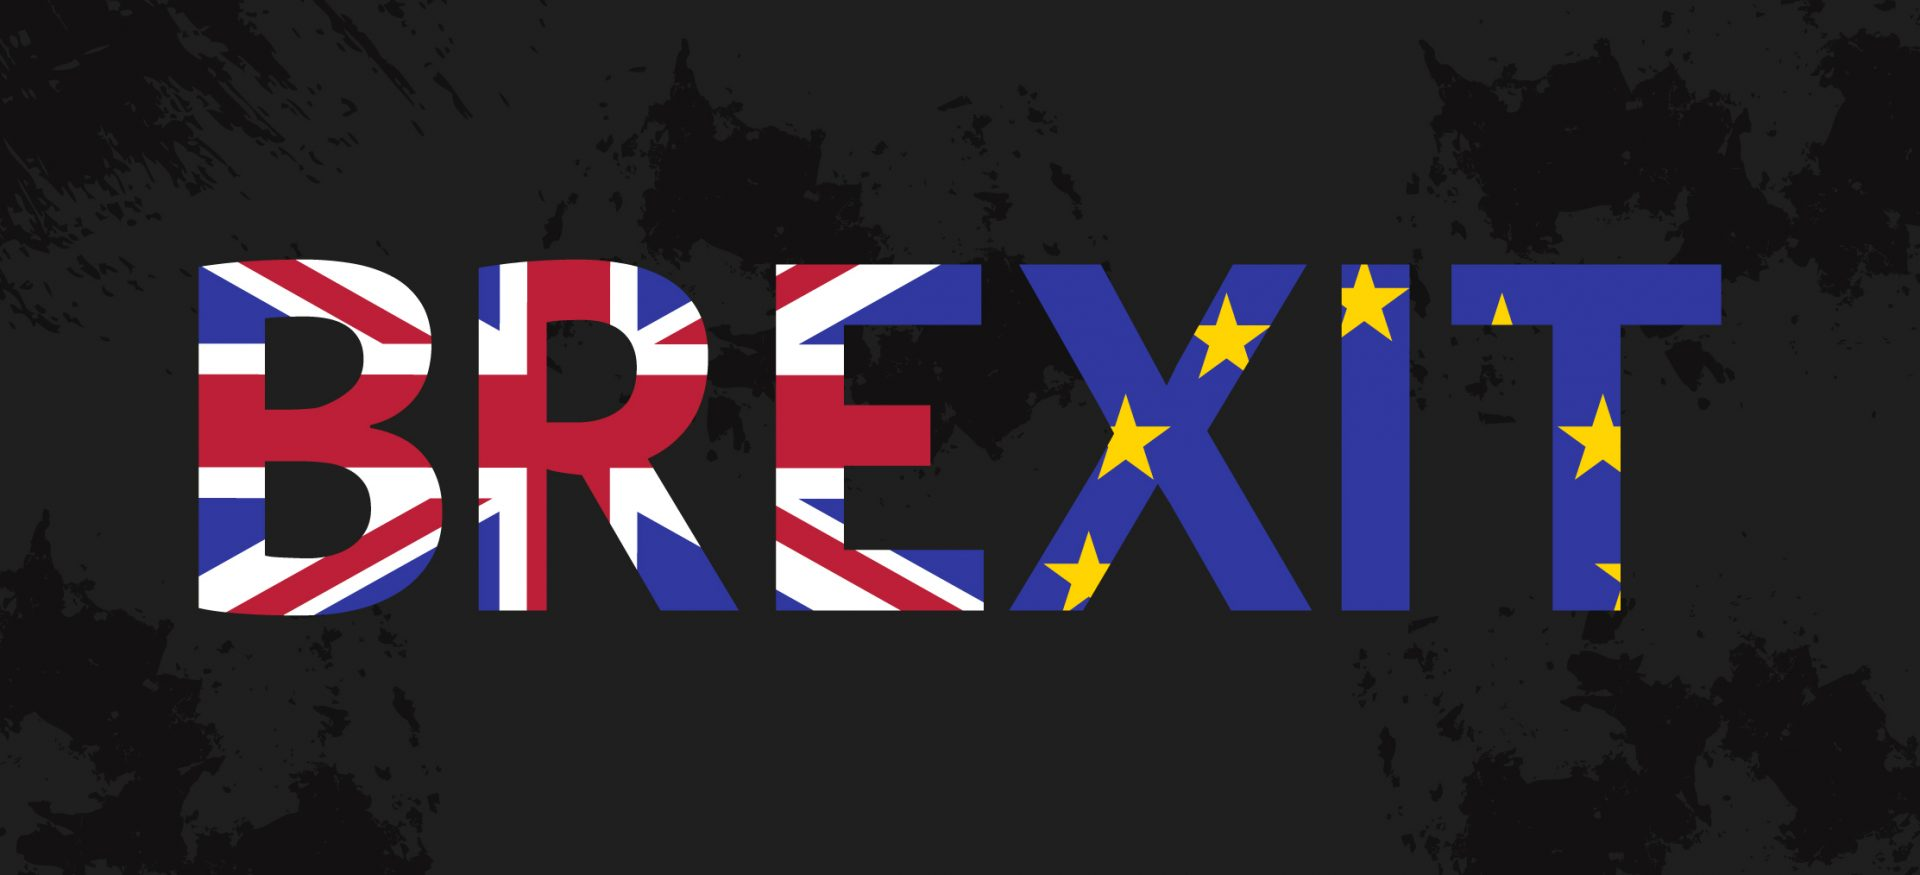 Brexit in flags VectorOpenStock commons.wikimedia.org